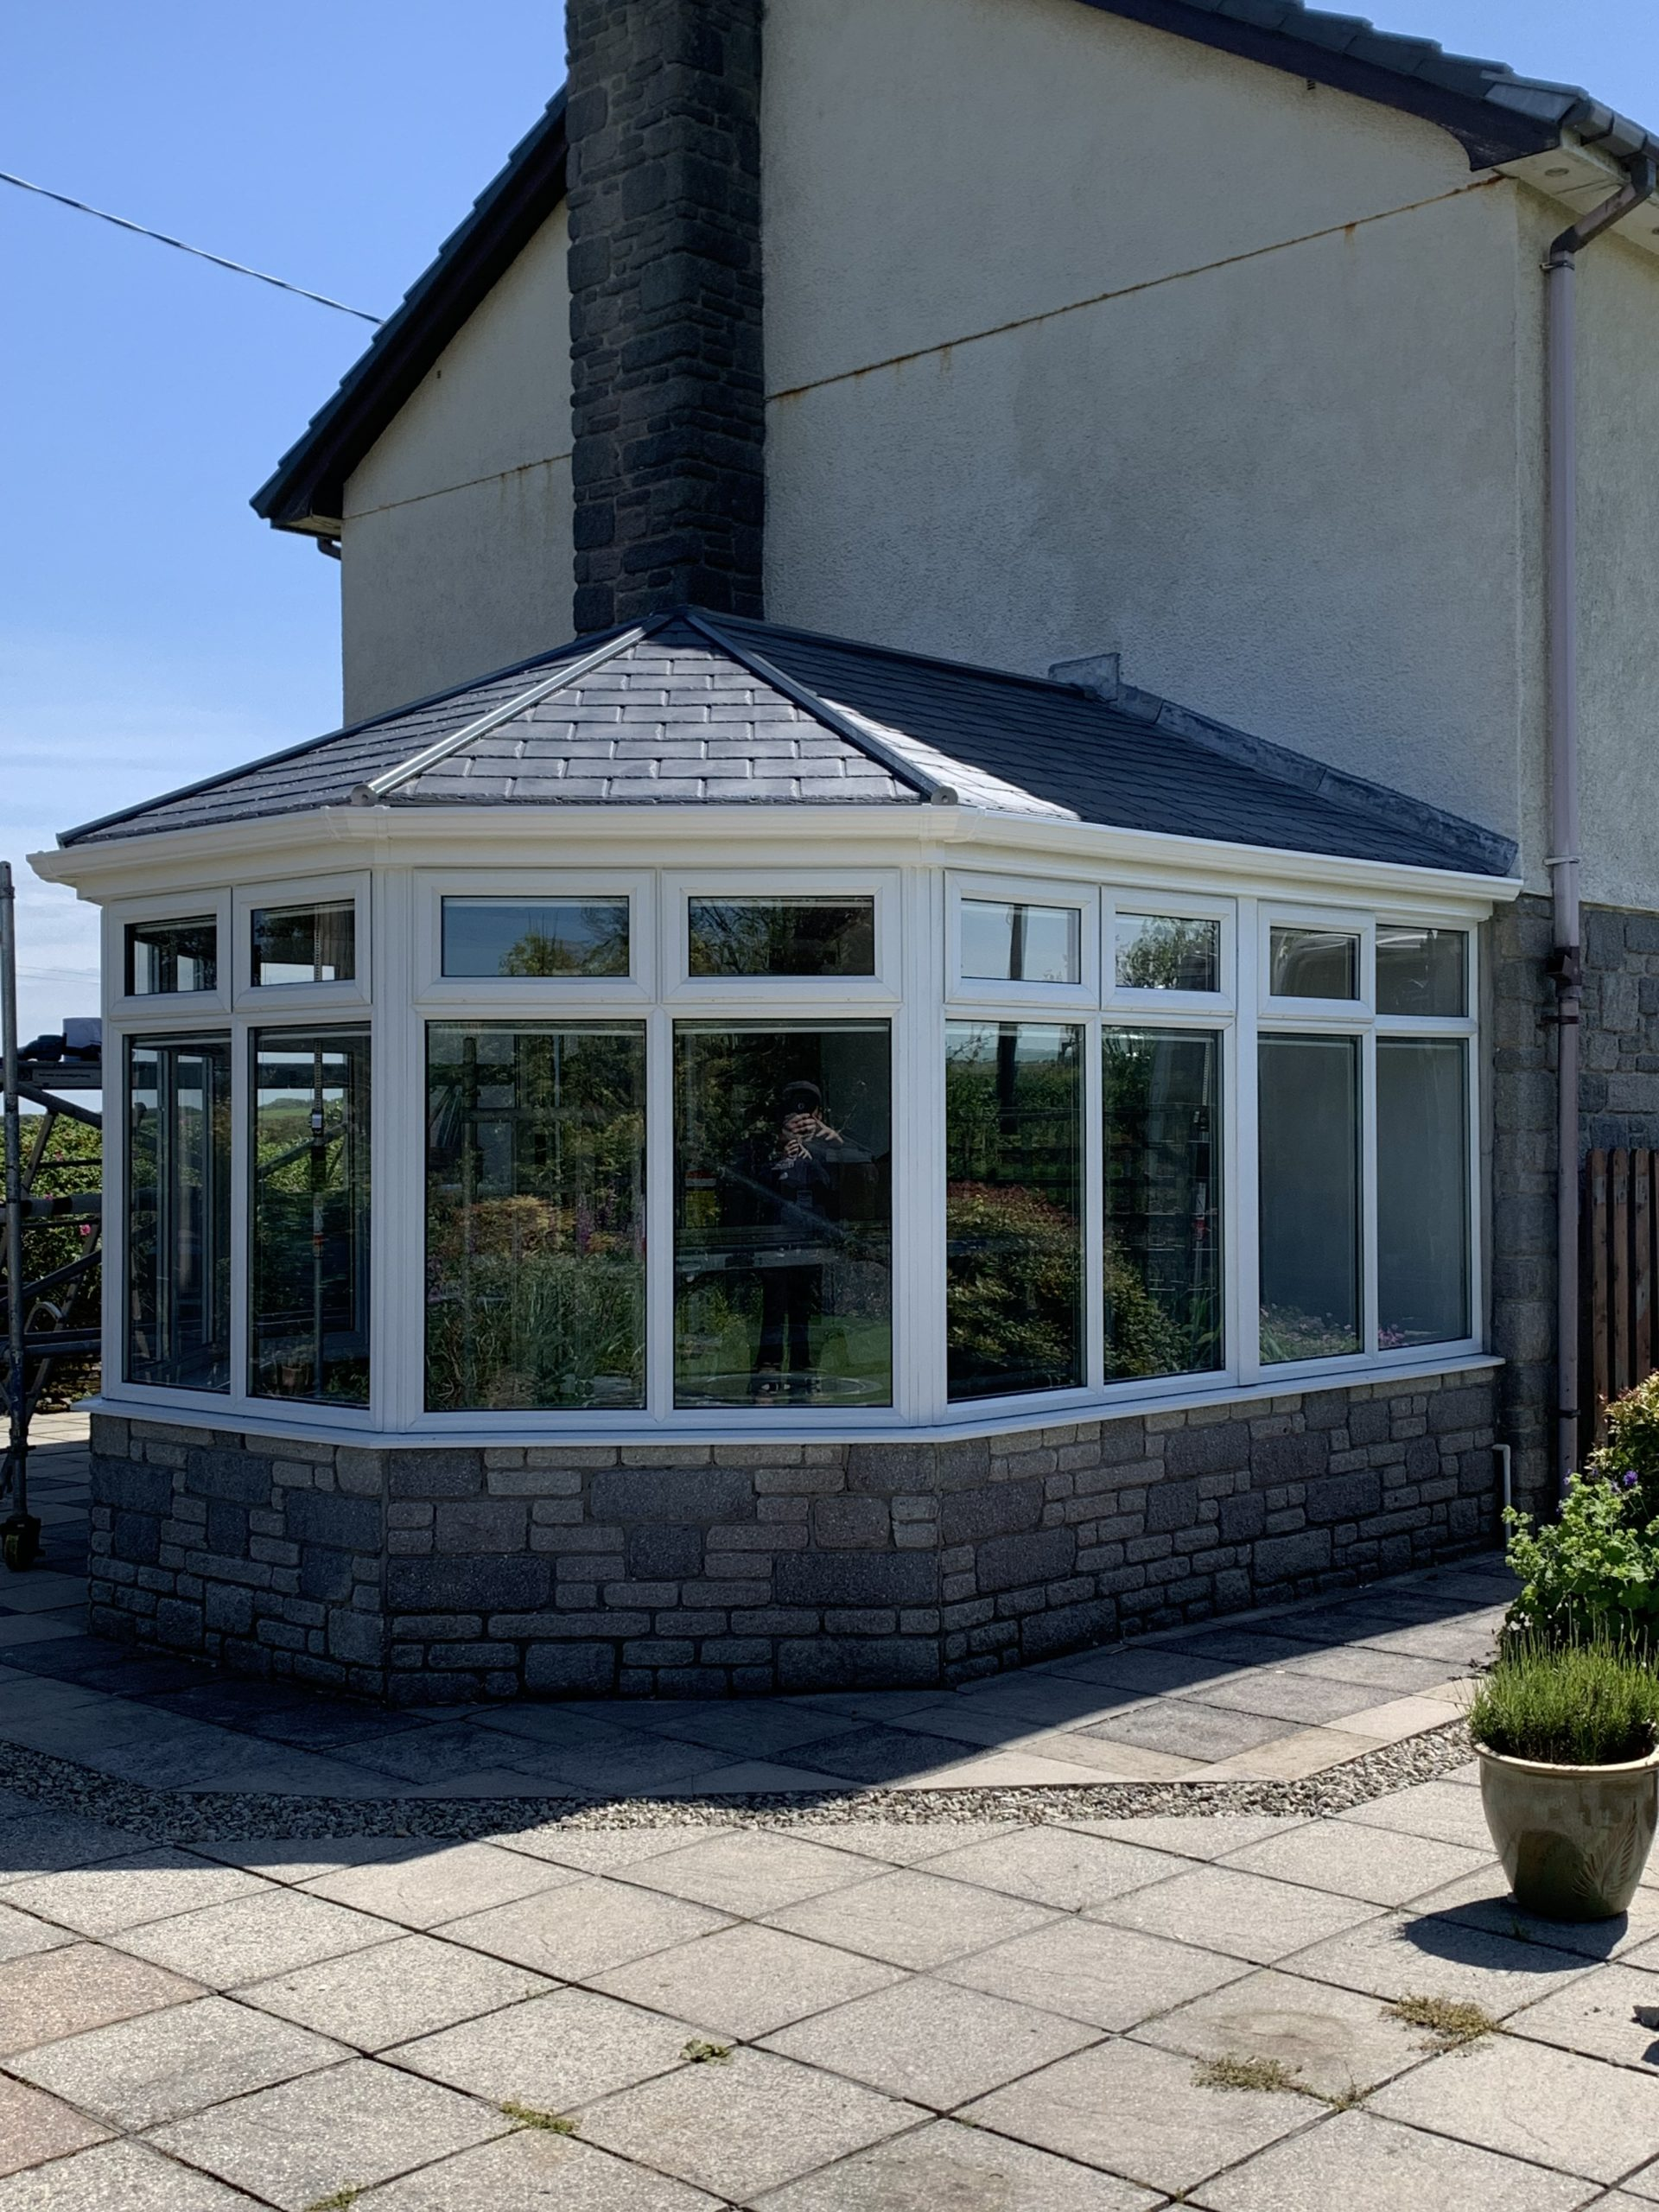 Ultraroof tiled conservatory roof installtion camelford, cornwall